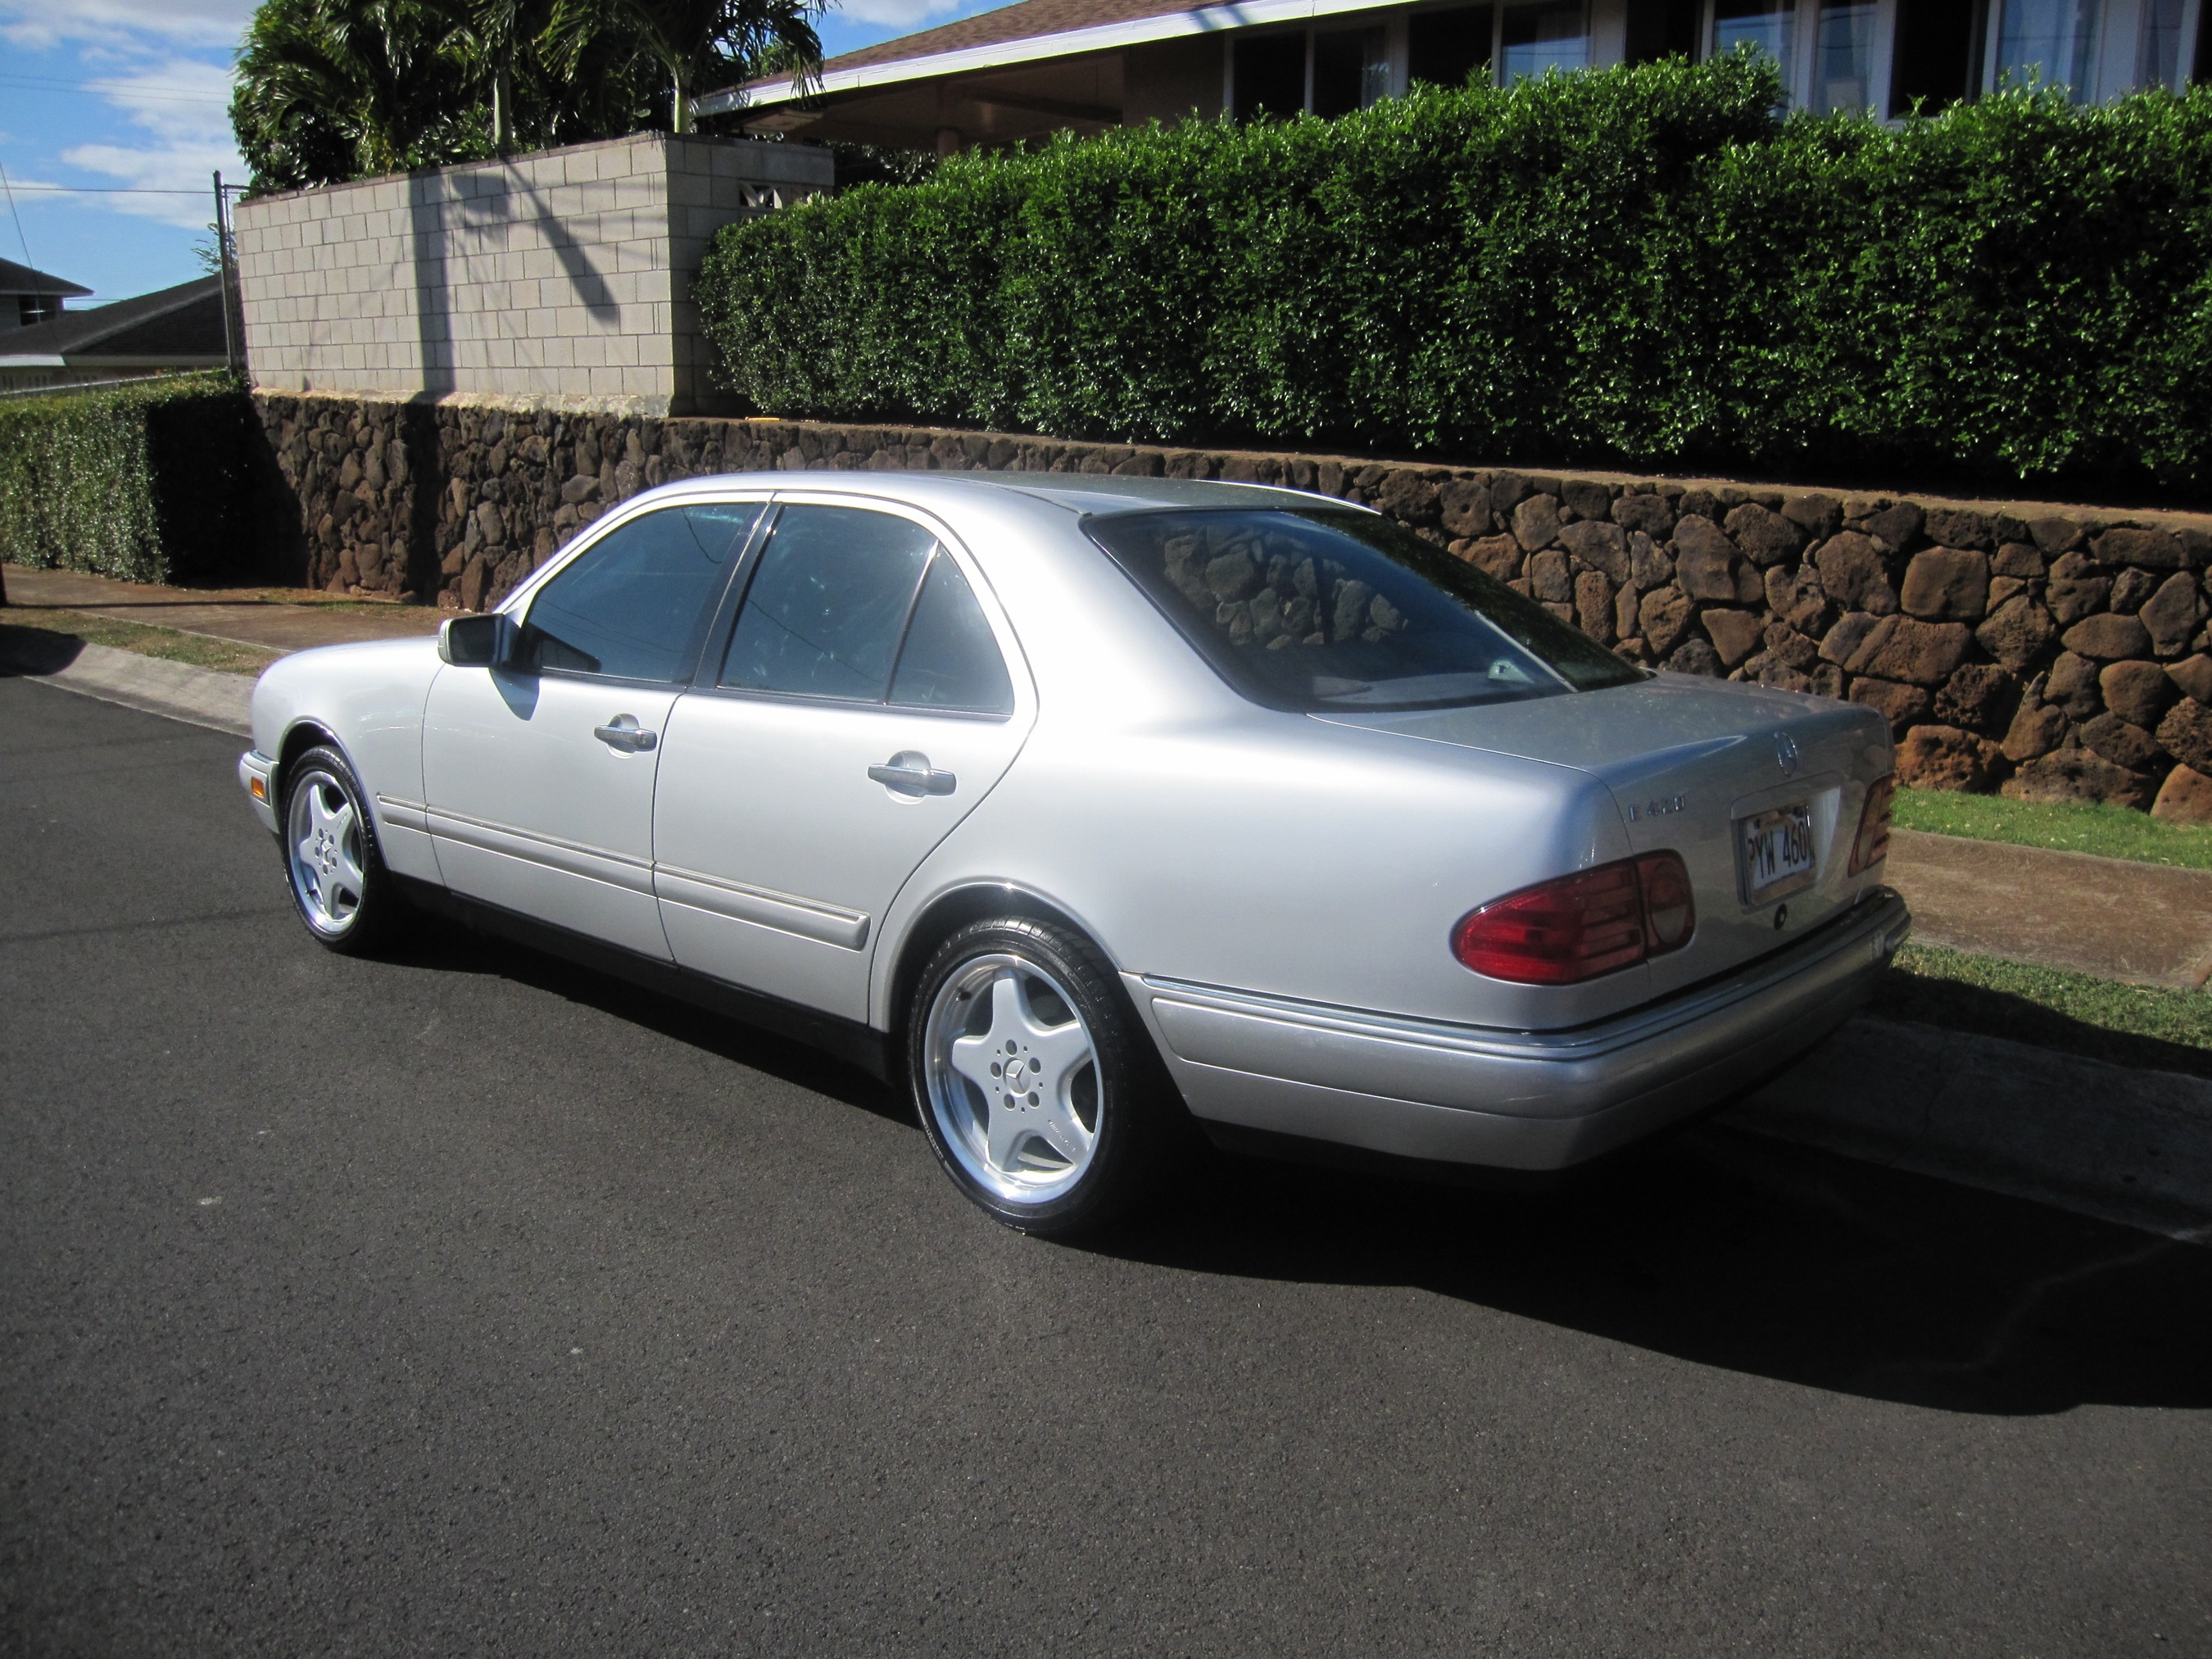 Mic3mic3 39 s 1997 mercedes benz e class in honolulu hi for 1997 mercedes benz e class